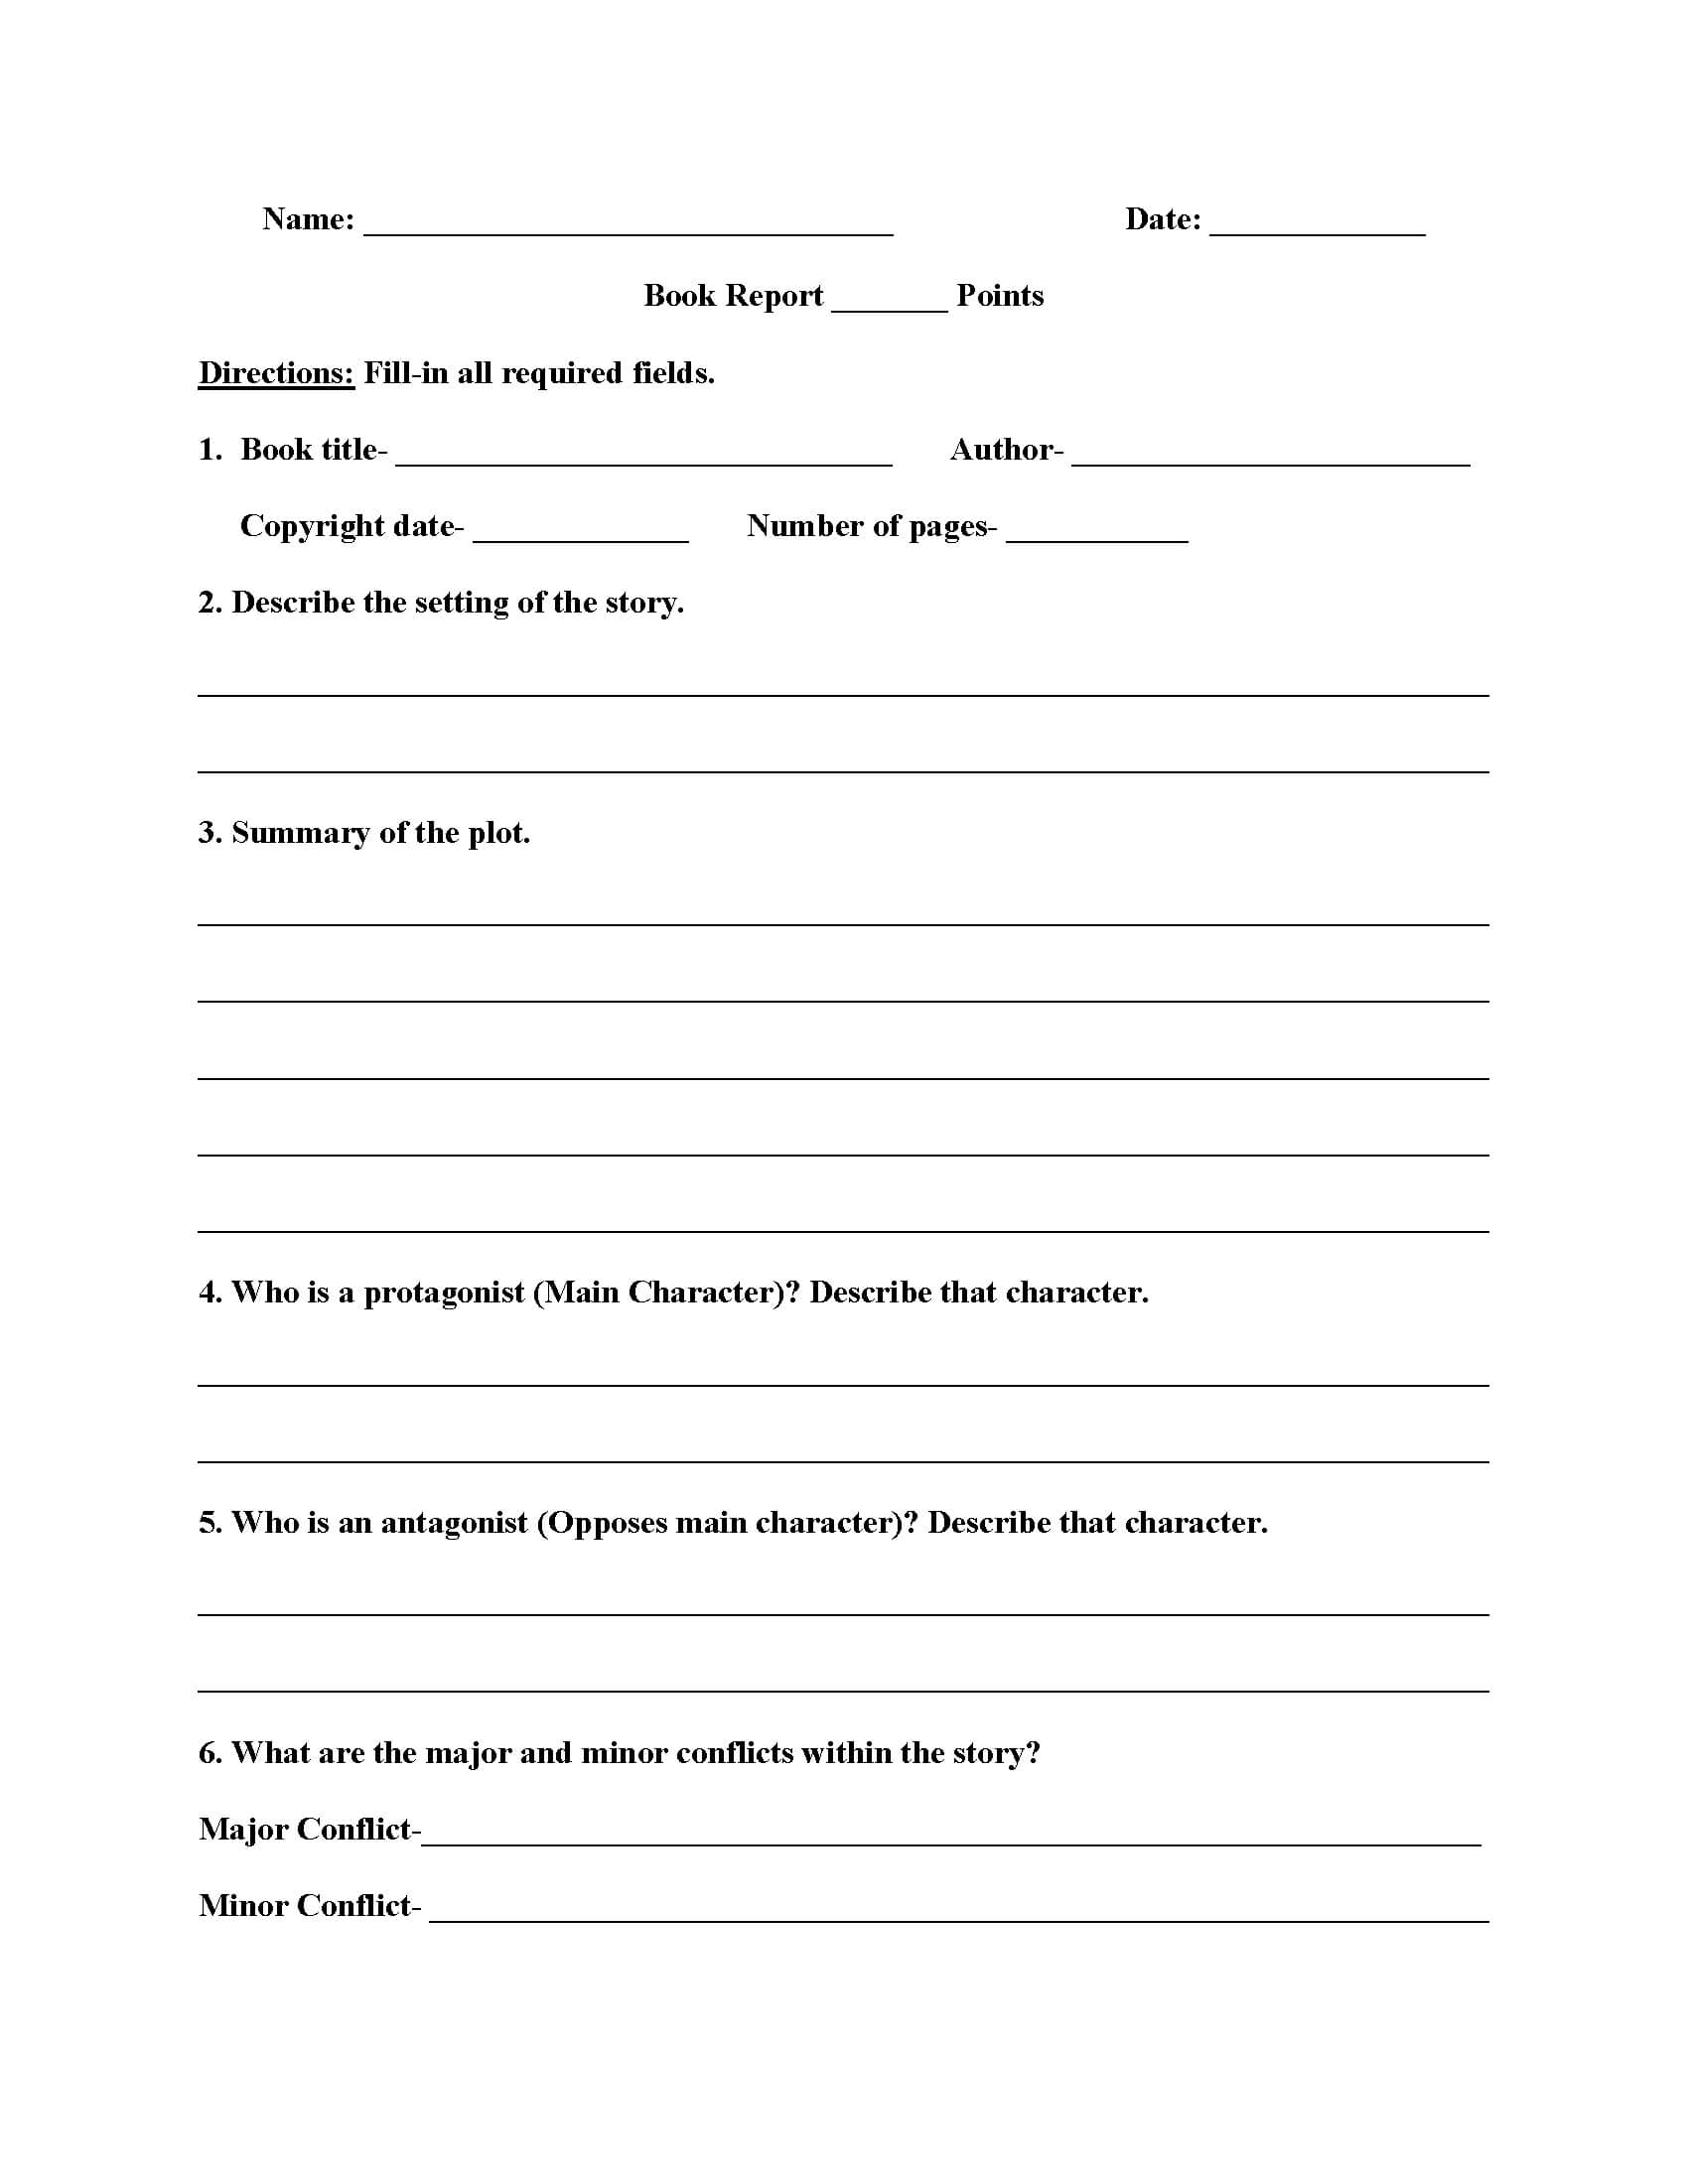 022 Template Ideas High School Book Report Free Wondrous Pertaining To Book Report Template 4Th Grade